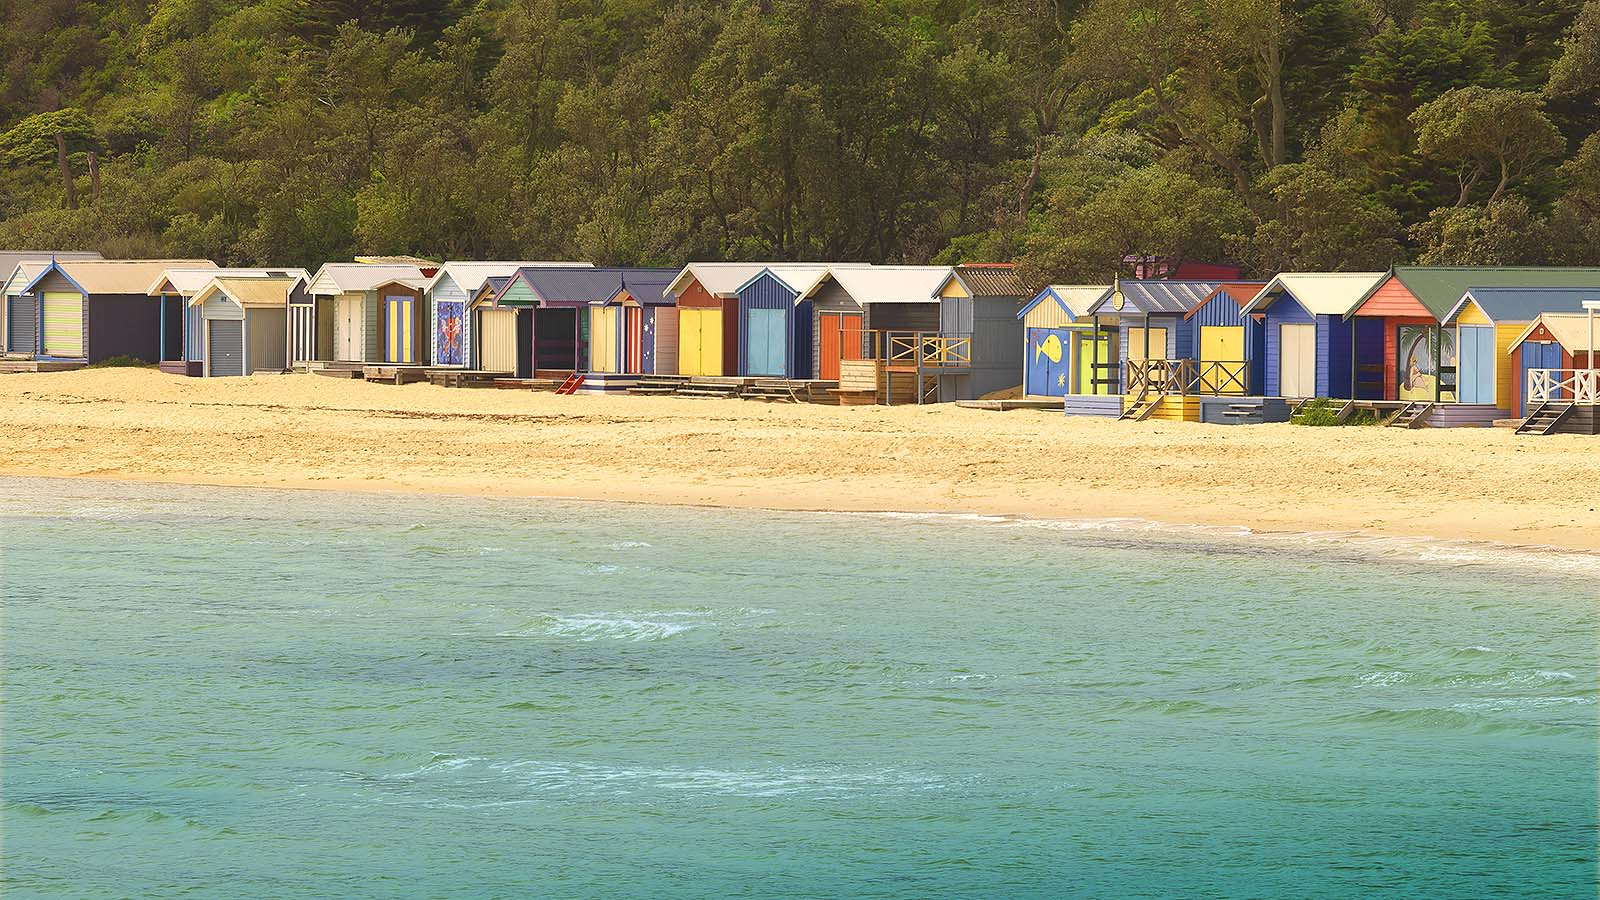 Bathing boxes, Mornington Peninsula, Victoria, Australia